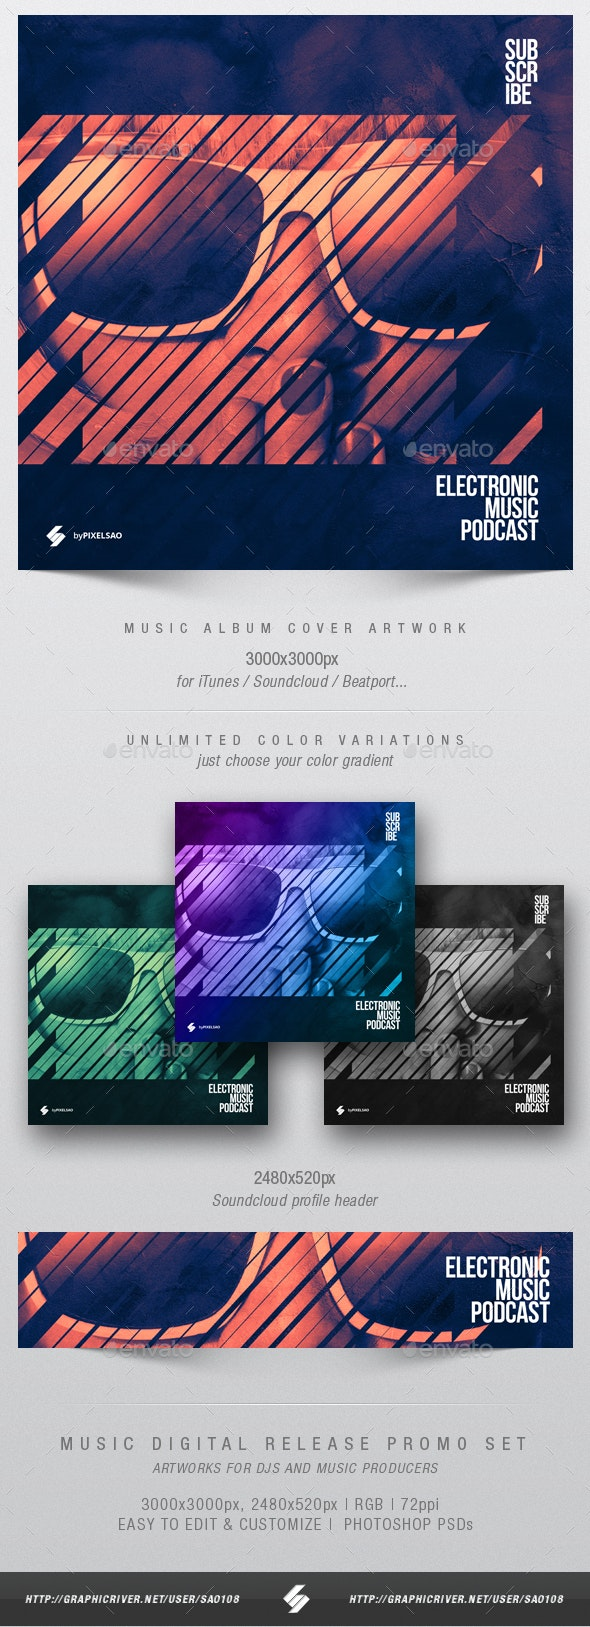 Electronic Music Podcast - Album Cover Artwork Template - Miscellaneous Social Media